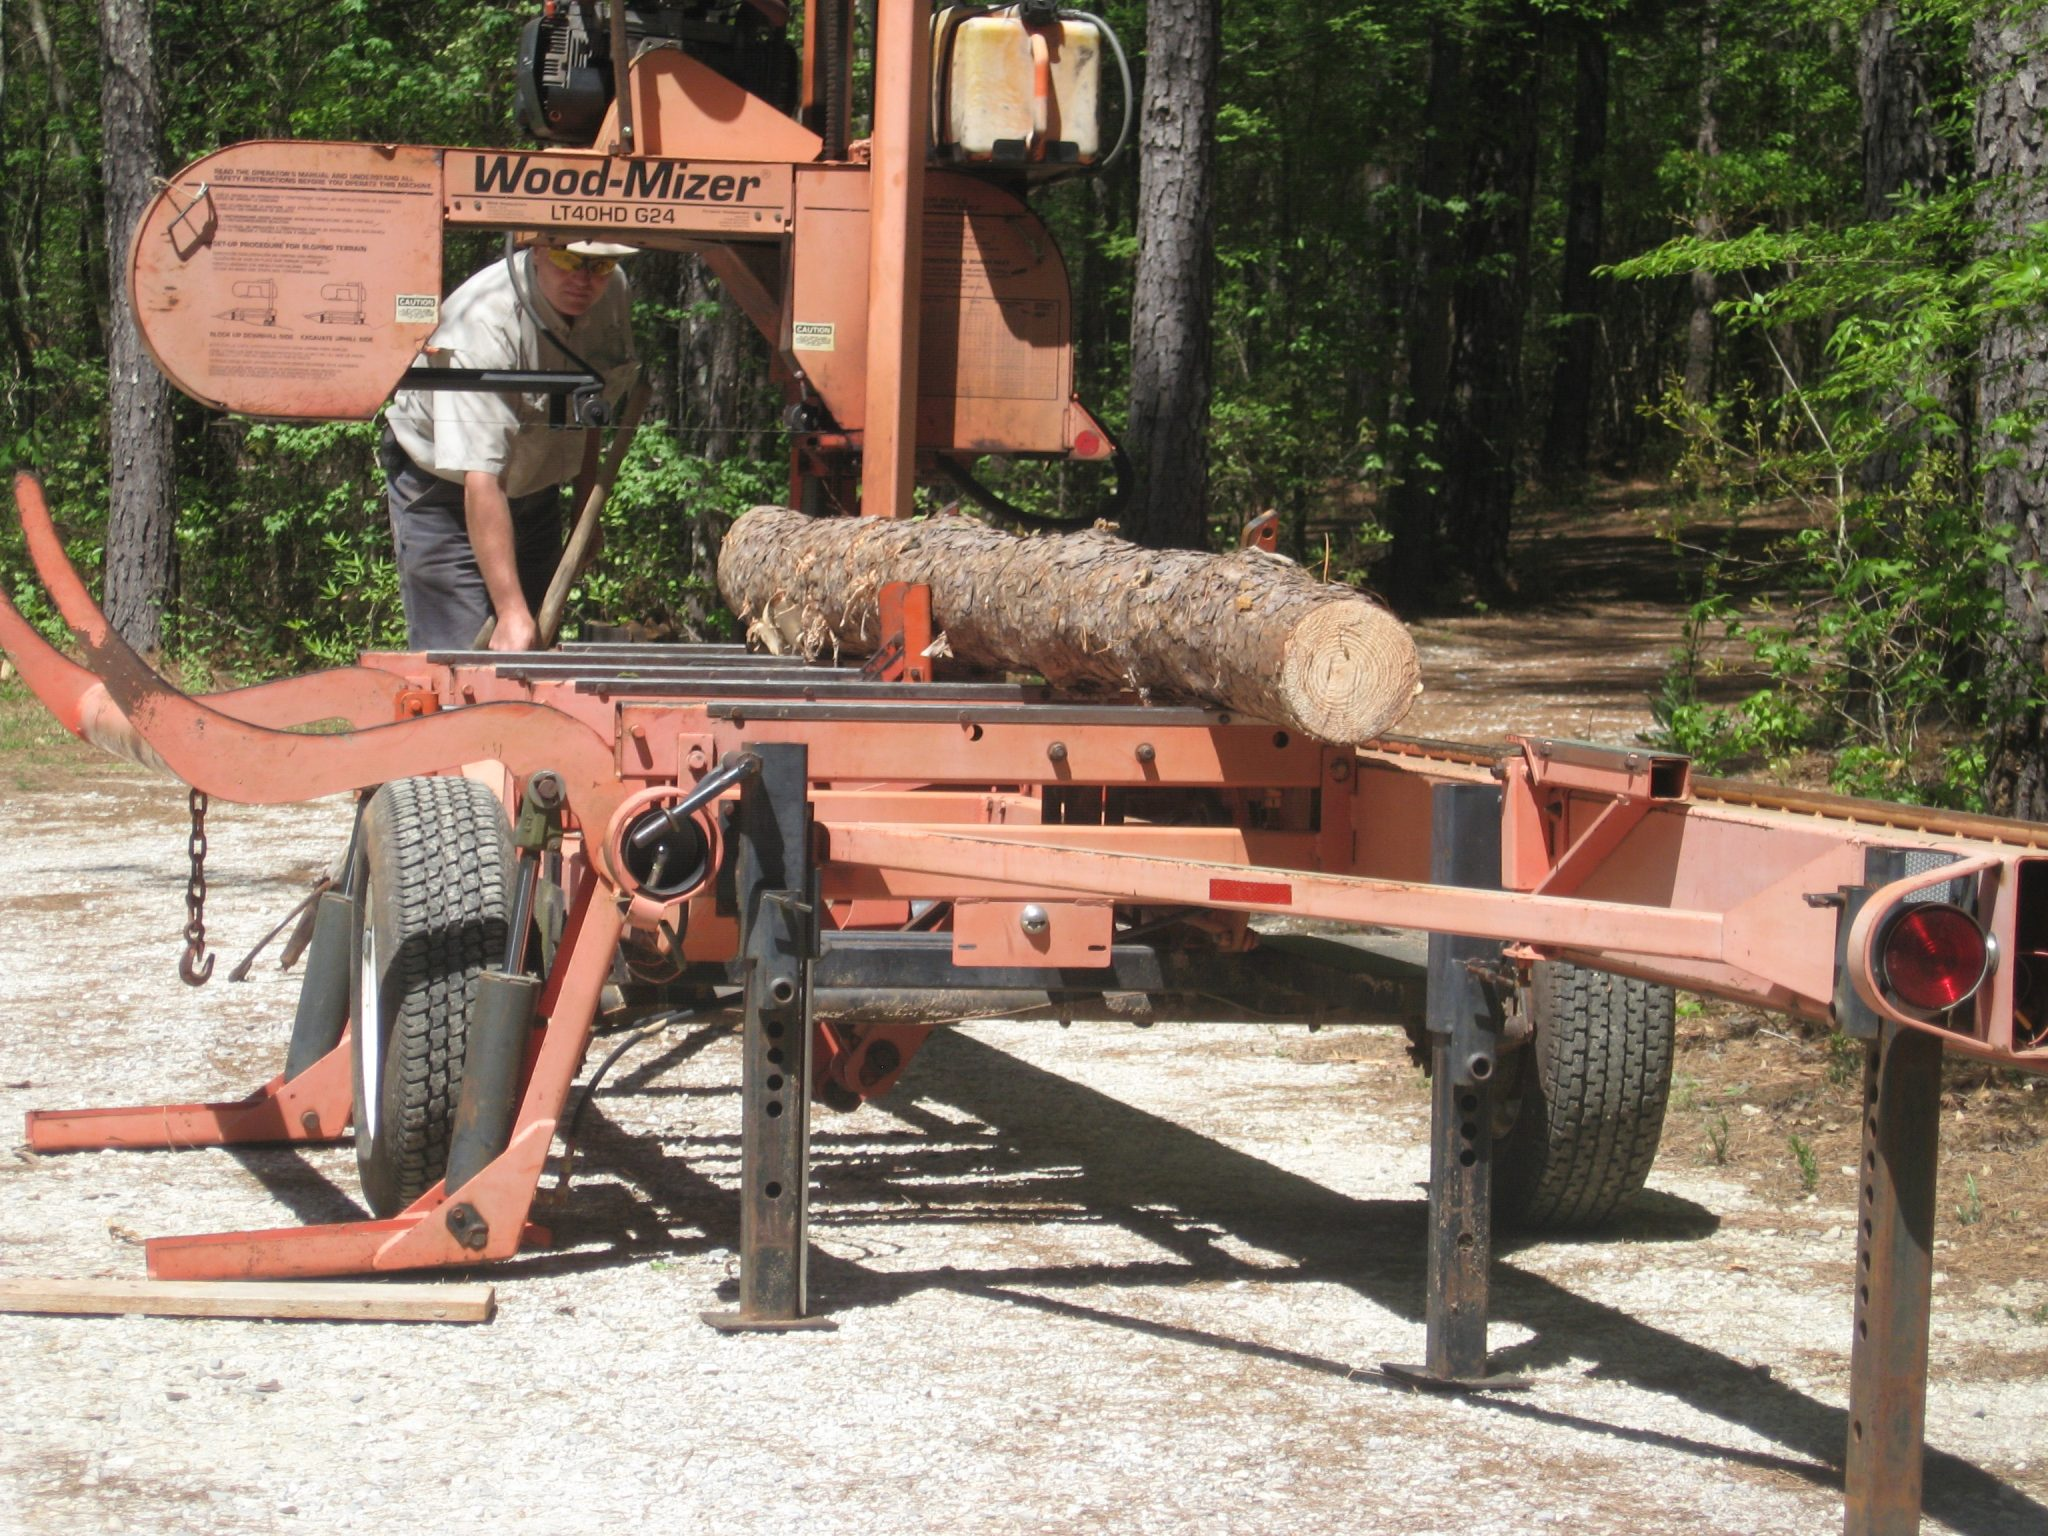 Portable sawmills can be moved to the location where trees will be harvested, eliminating the need to transport logs. (Photo credit: Becky Barlow)